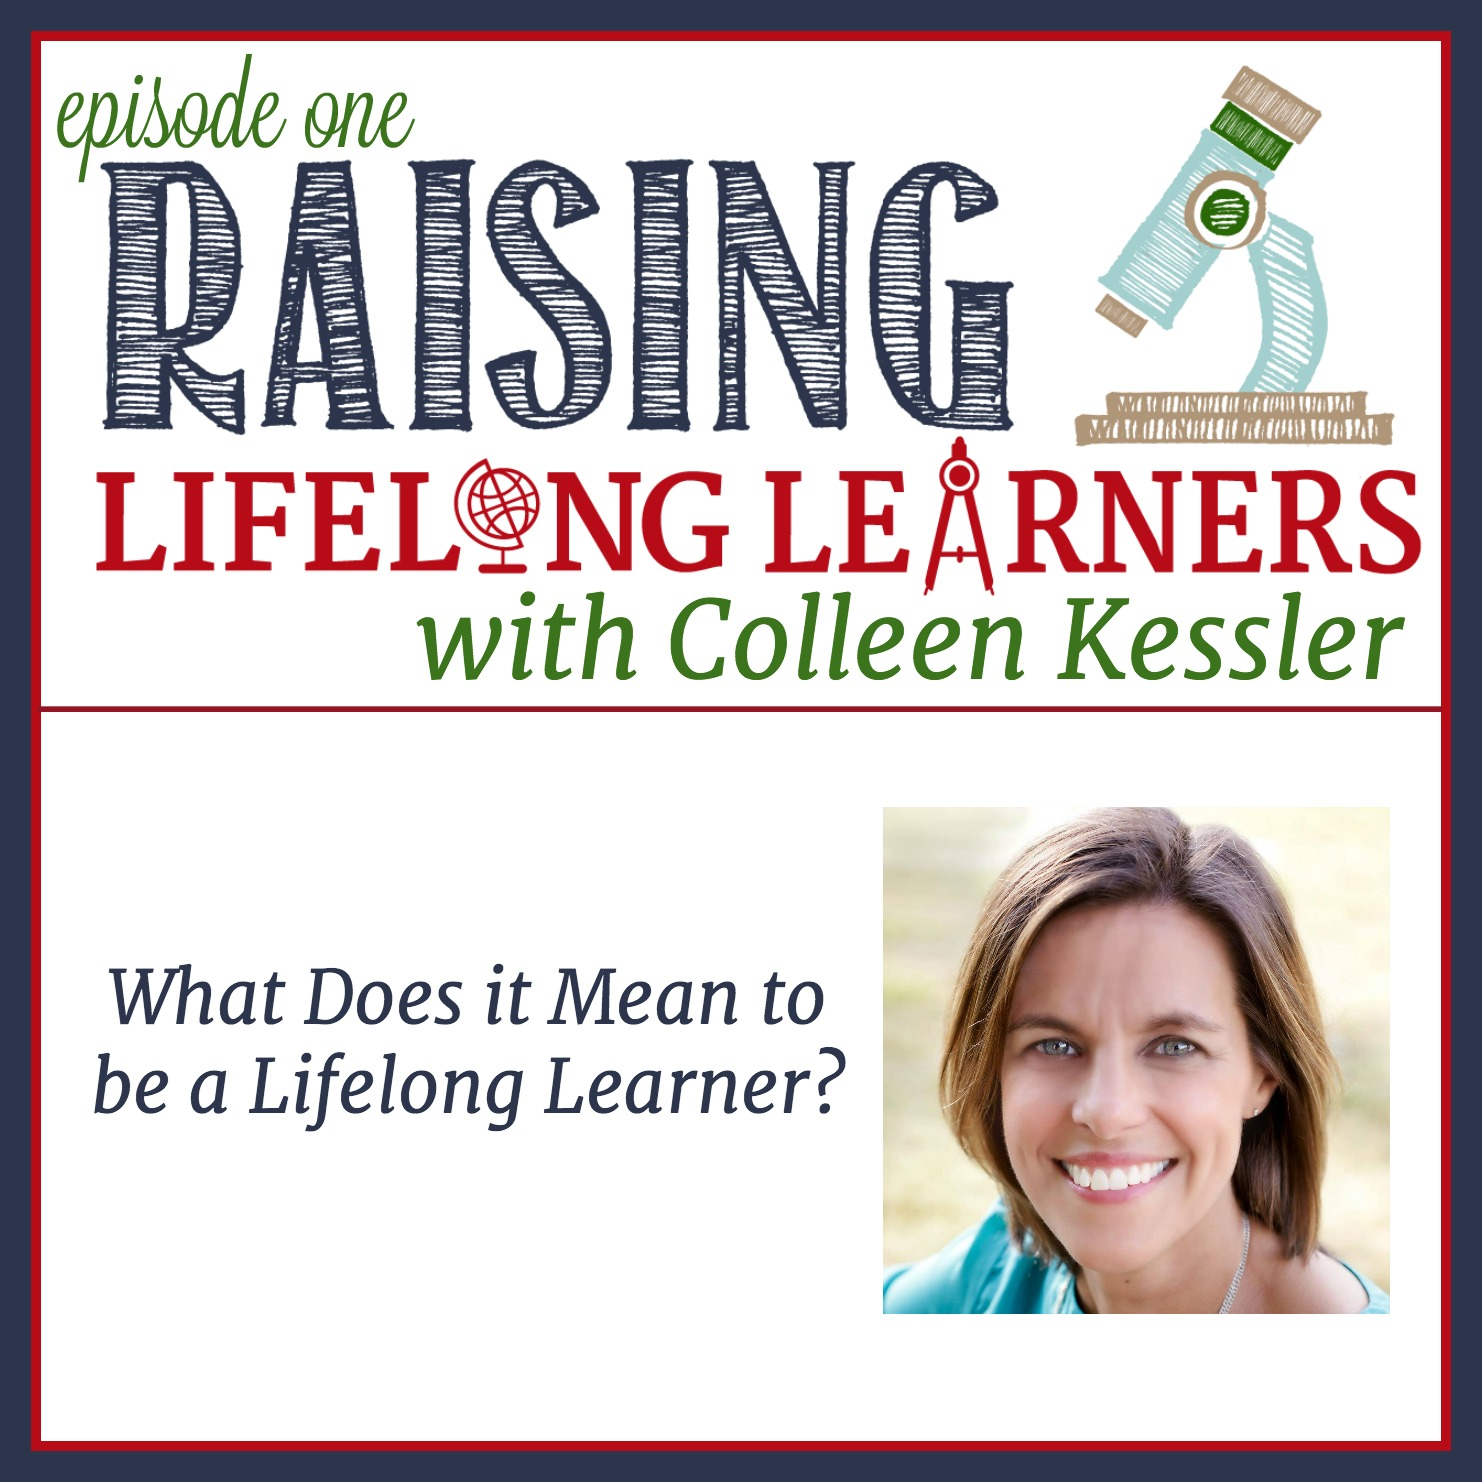 Raising Lifelong Learners Podcast Episode One - What Does it Mean to be a Lifelong Learner?